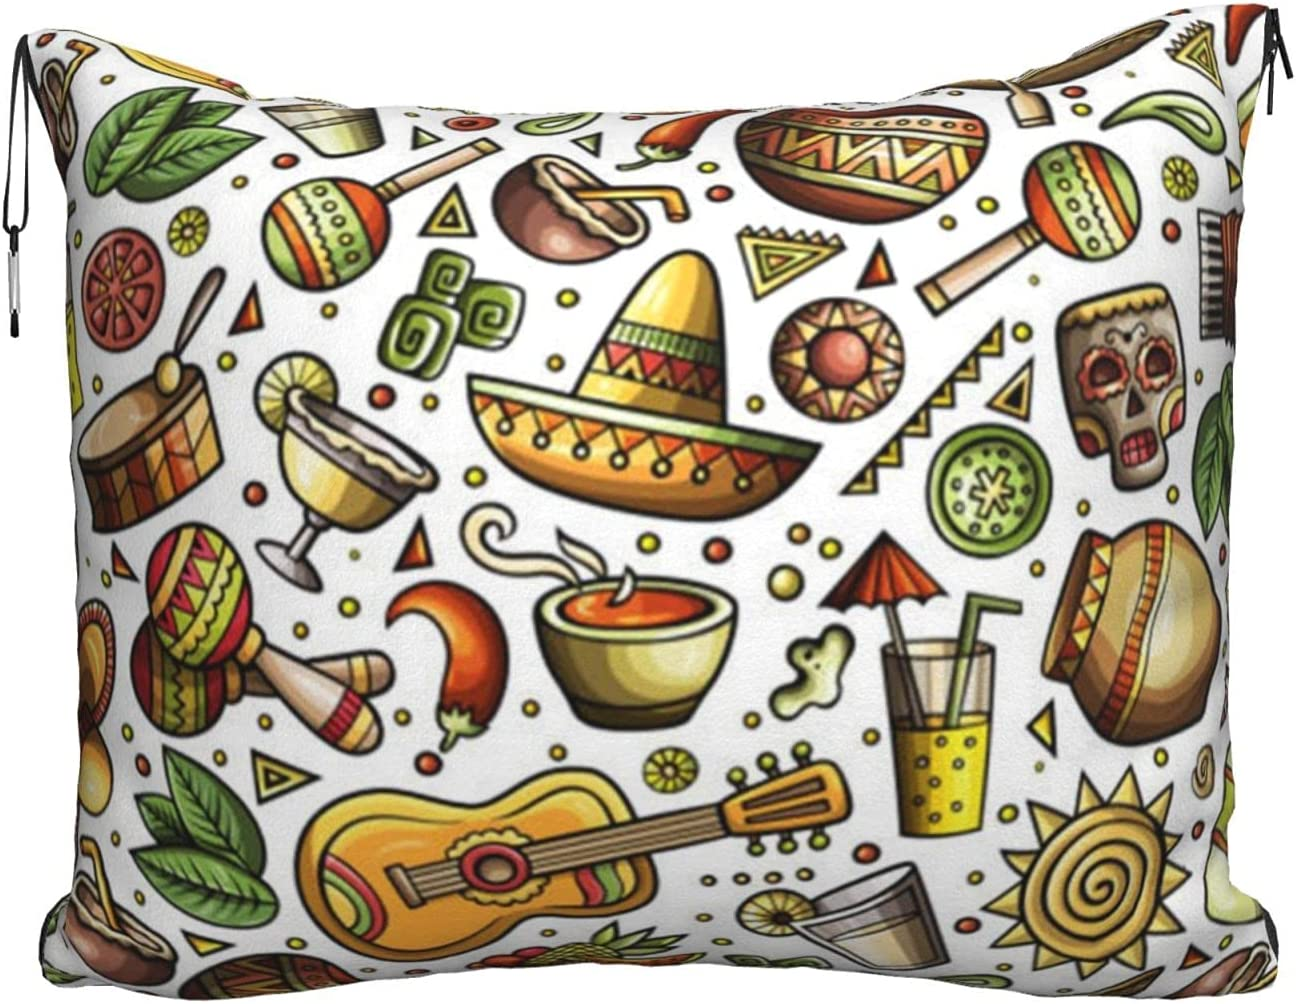 Funny Cartoon Superior Hats Guitar Printed Pillow Ve Travel Soft Max 51% OFF Blanket